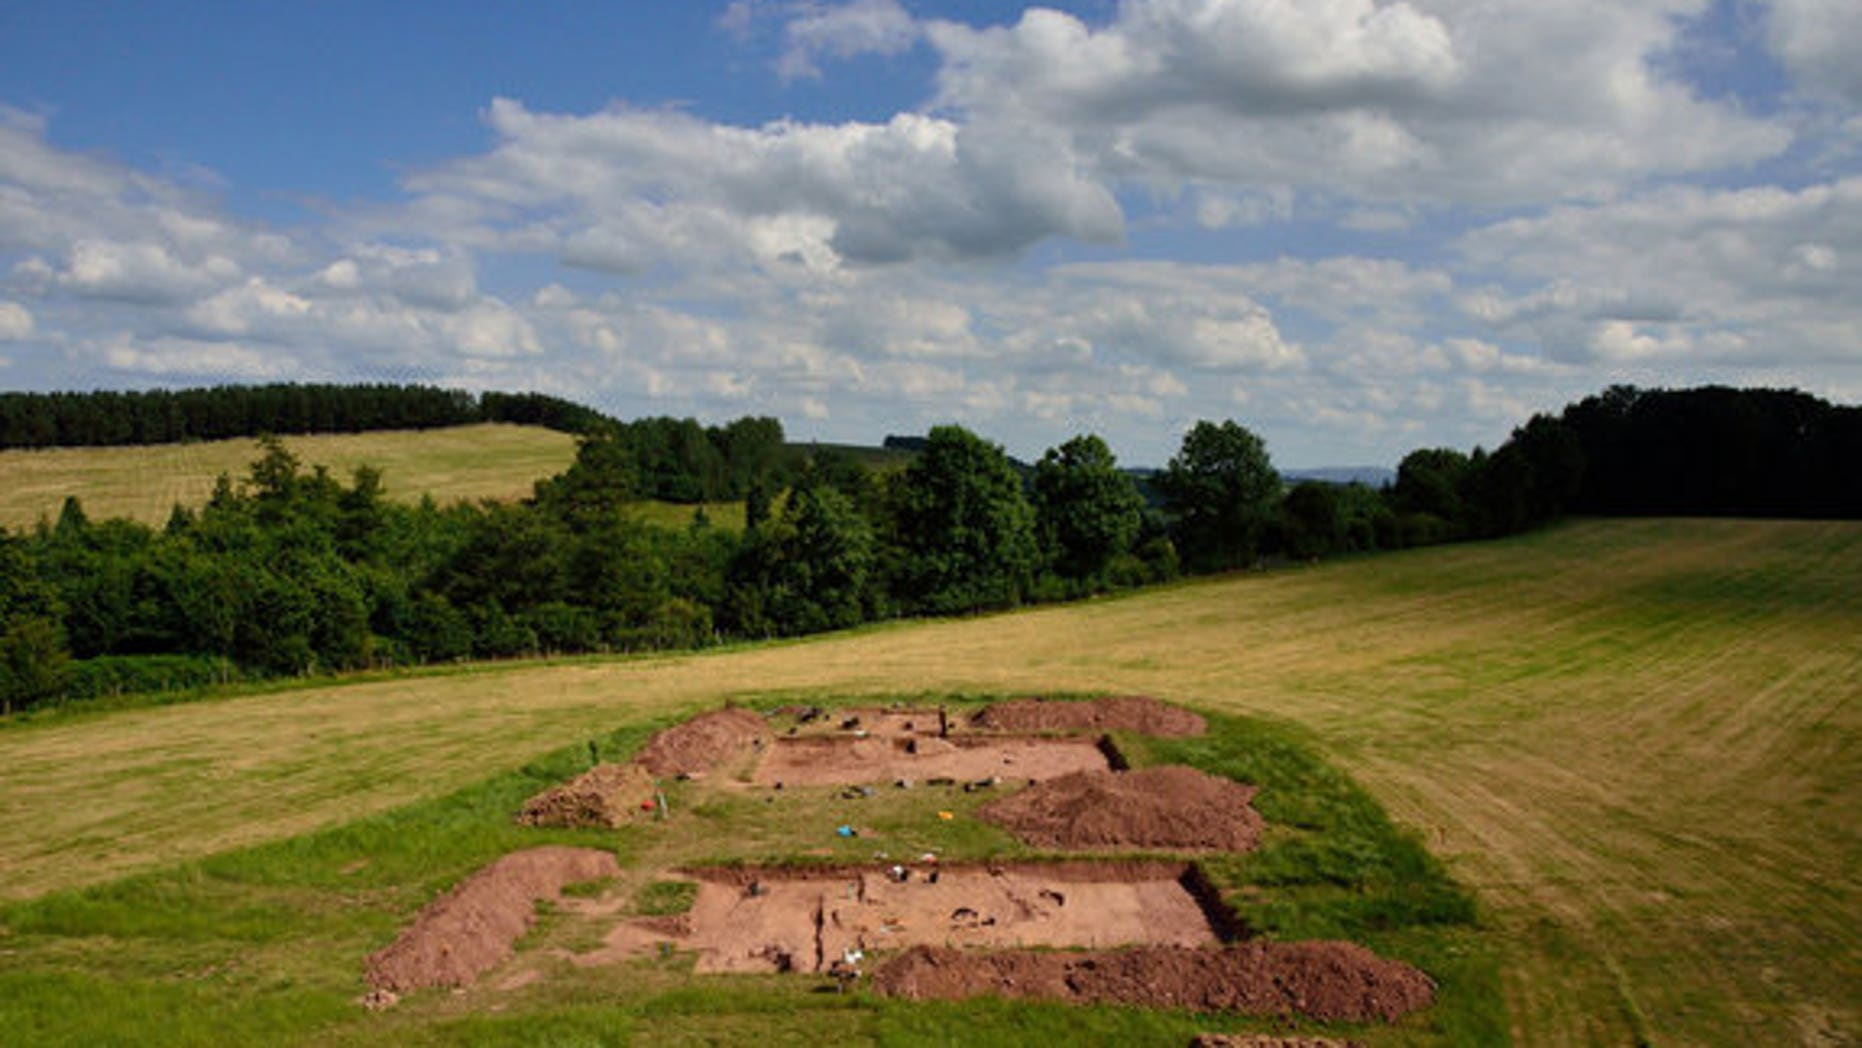 Excavations at Dorstone Hill in the UK revealed a nearly 6,000-year-old set of burial mounds that were created from the ashes of an ancient longhall.